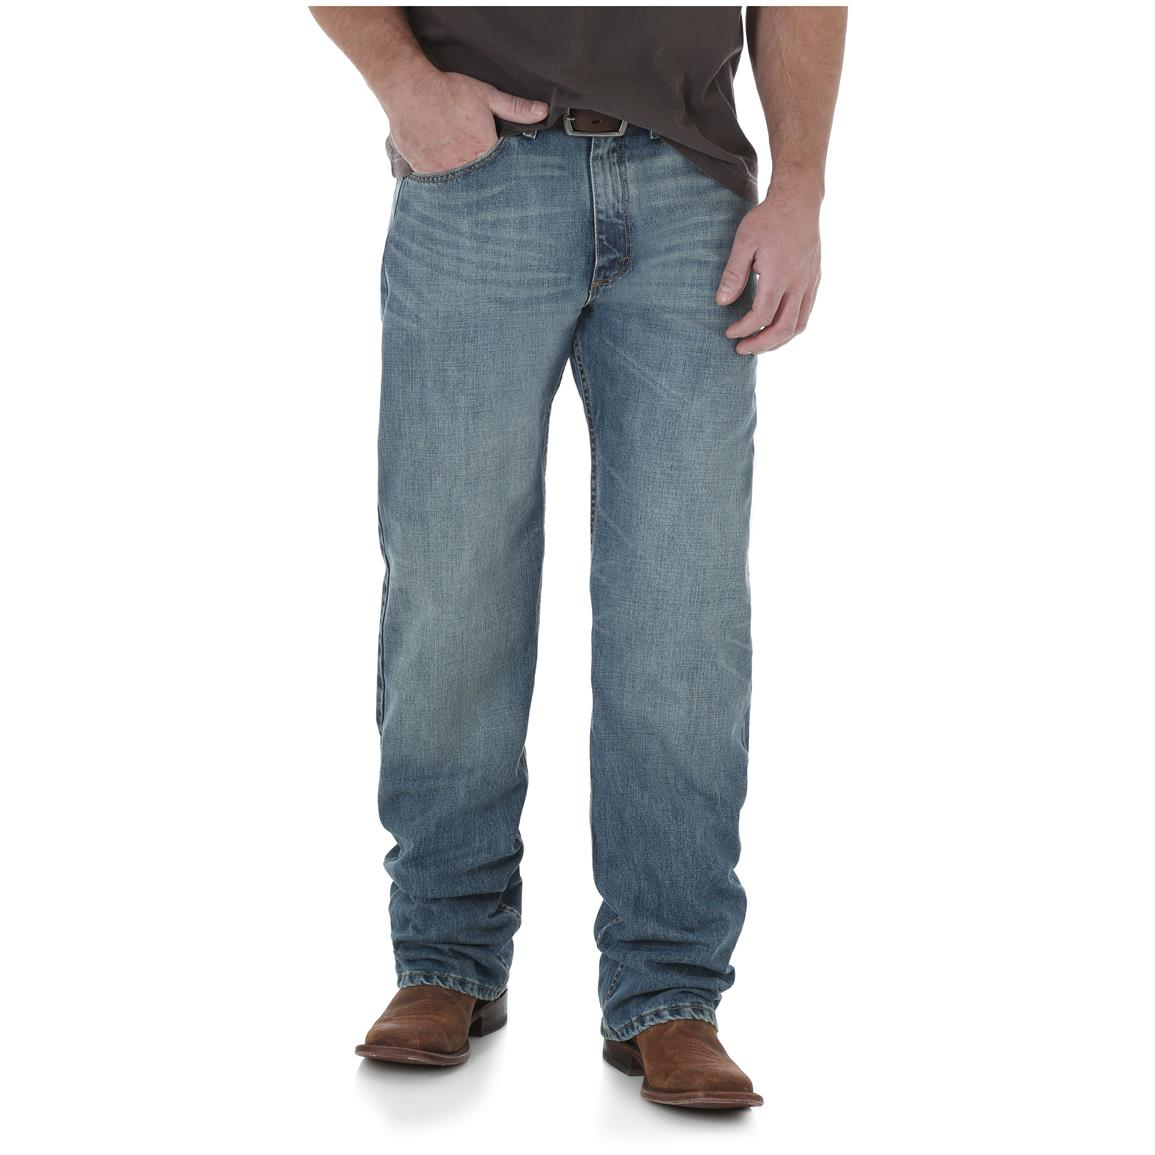 Wrangler Men's 20X 01 Competition Relaxed Jean, Dusty